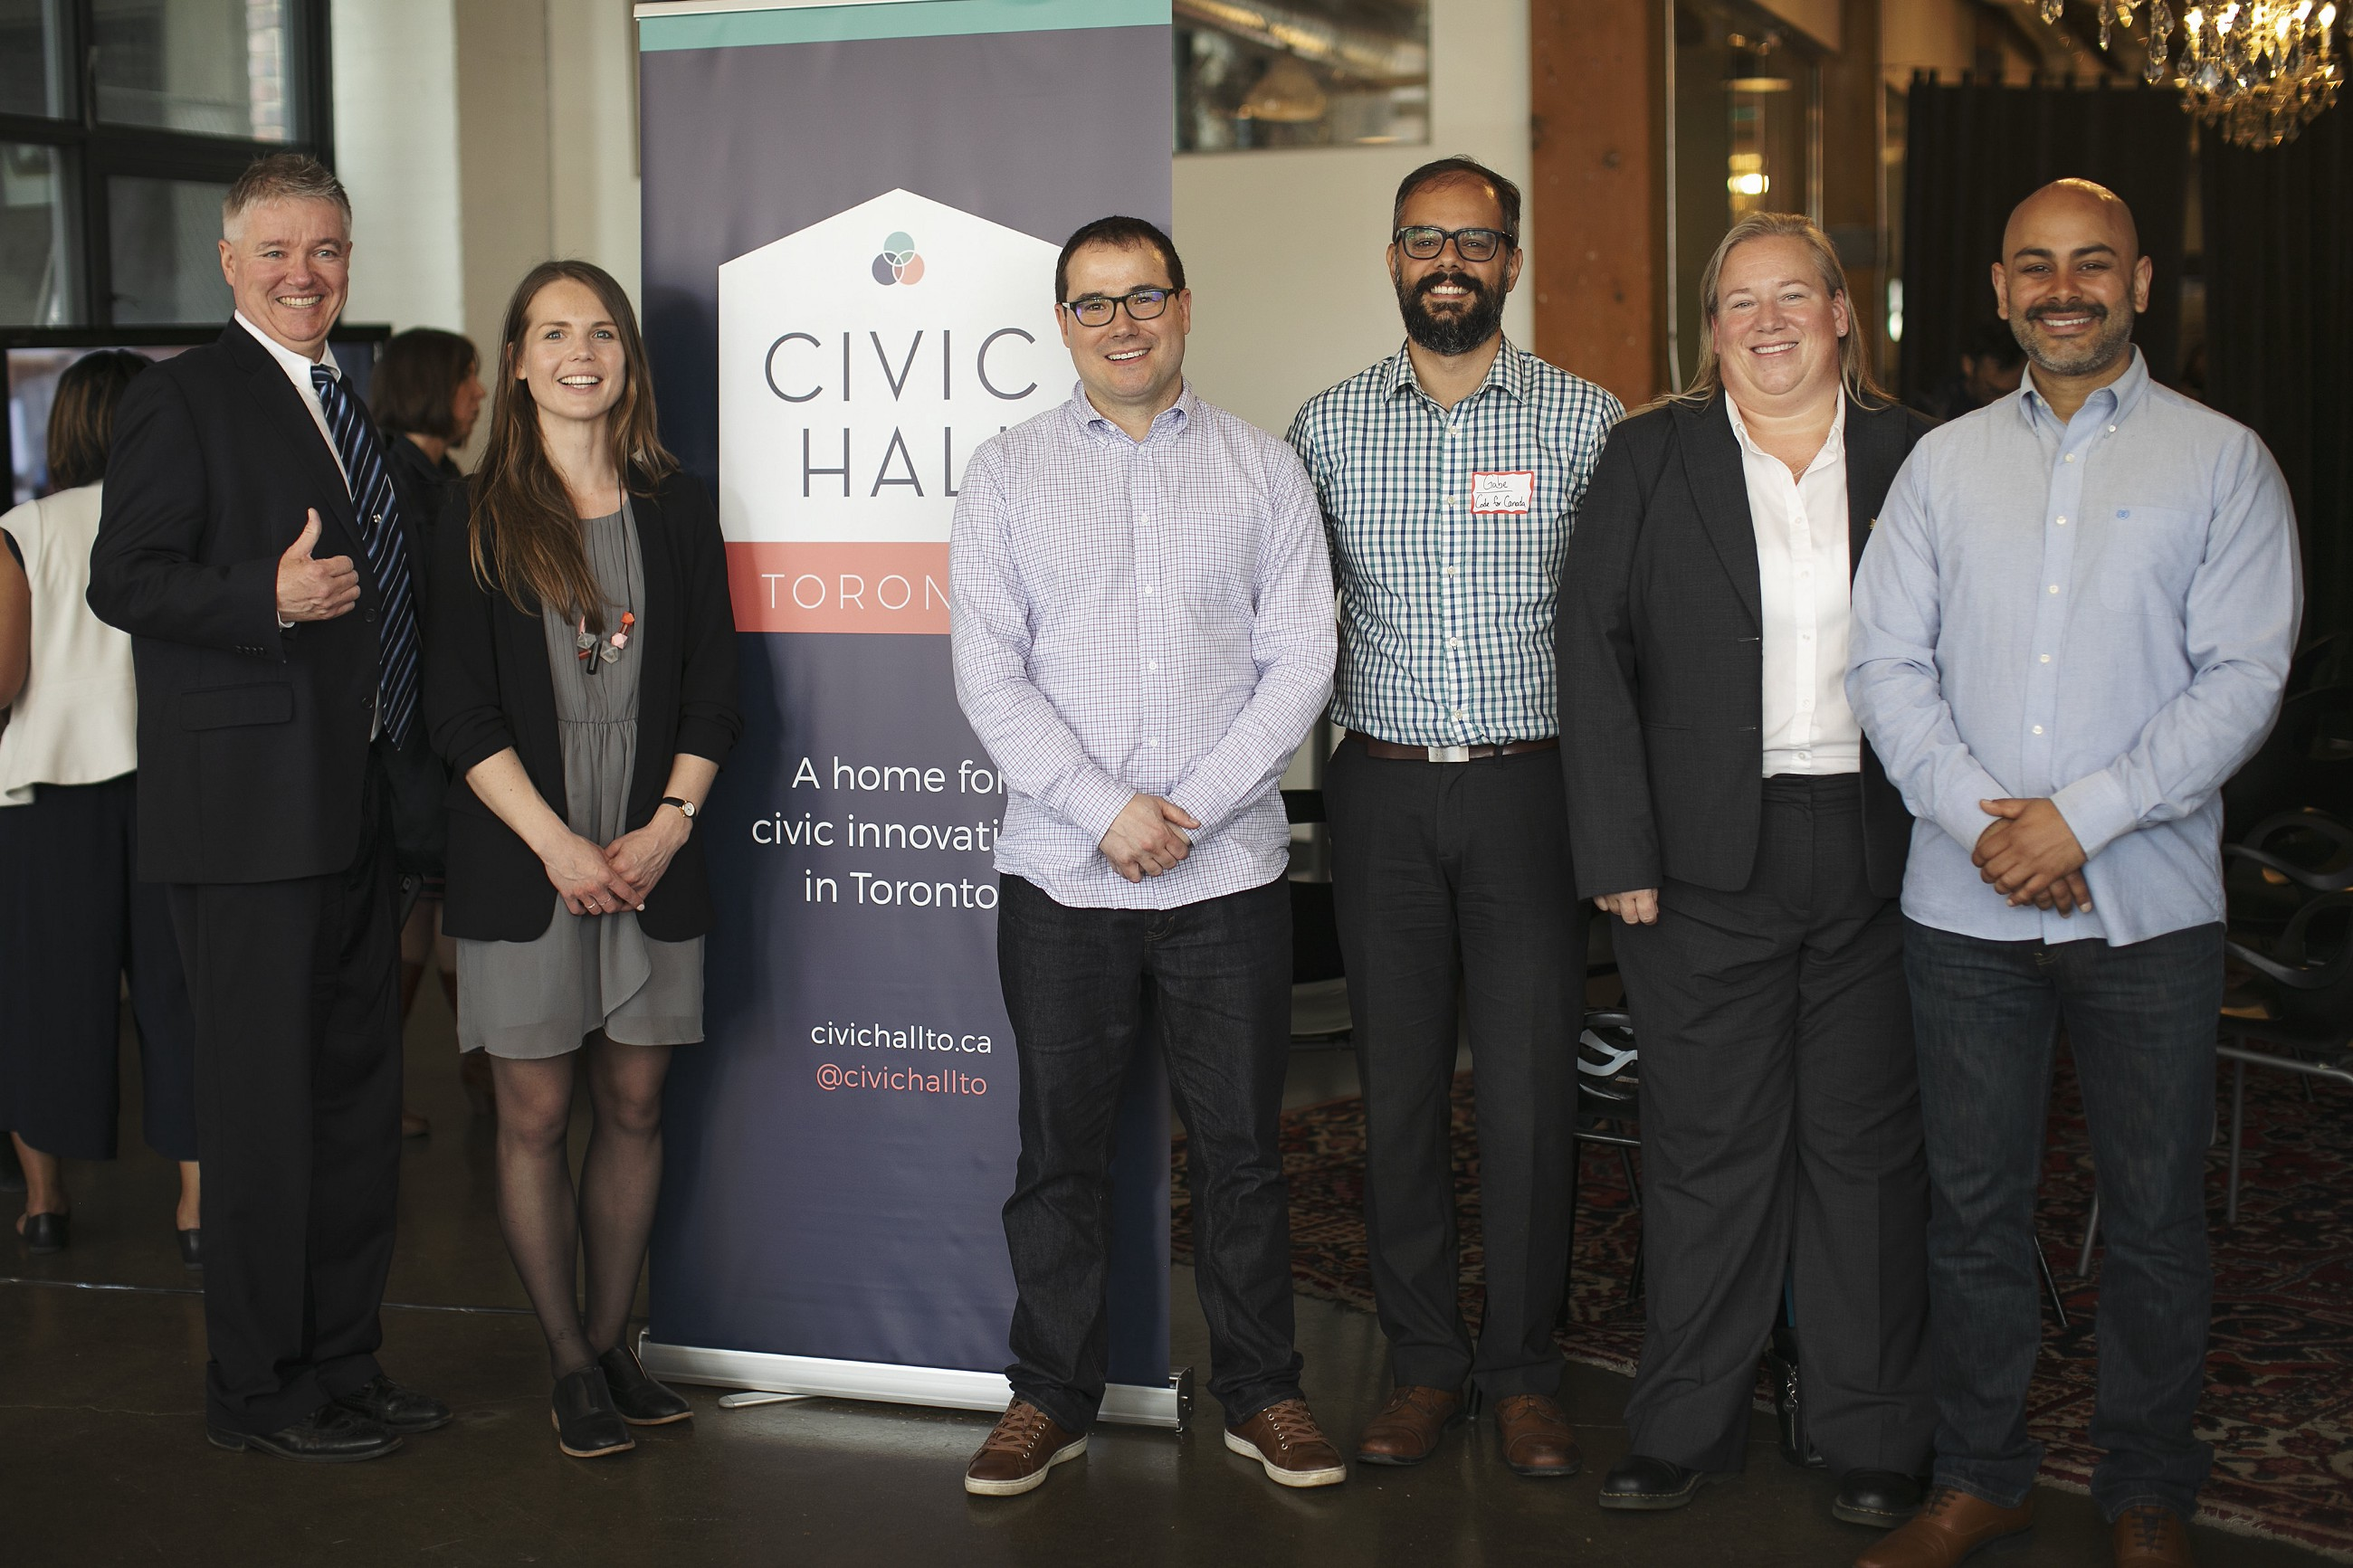 Civic Hall Toronto's First Quarter: Sharing, Learning, Collaborating